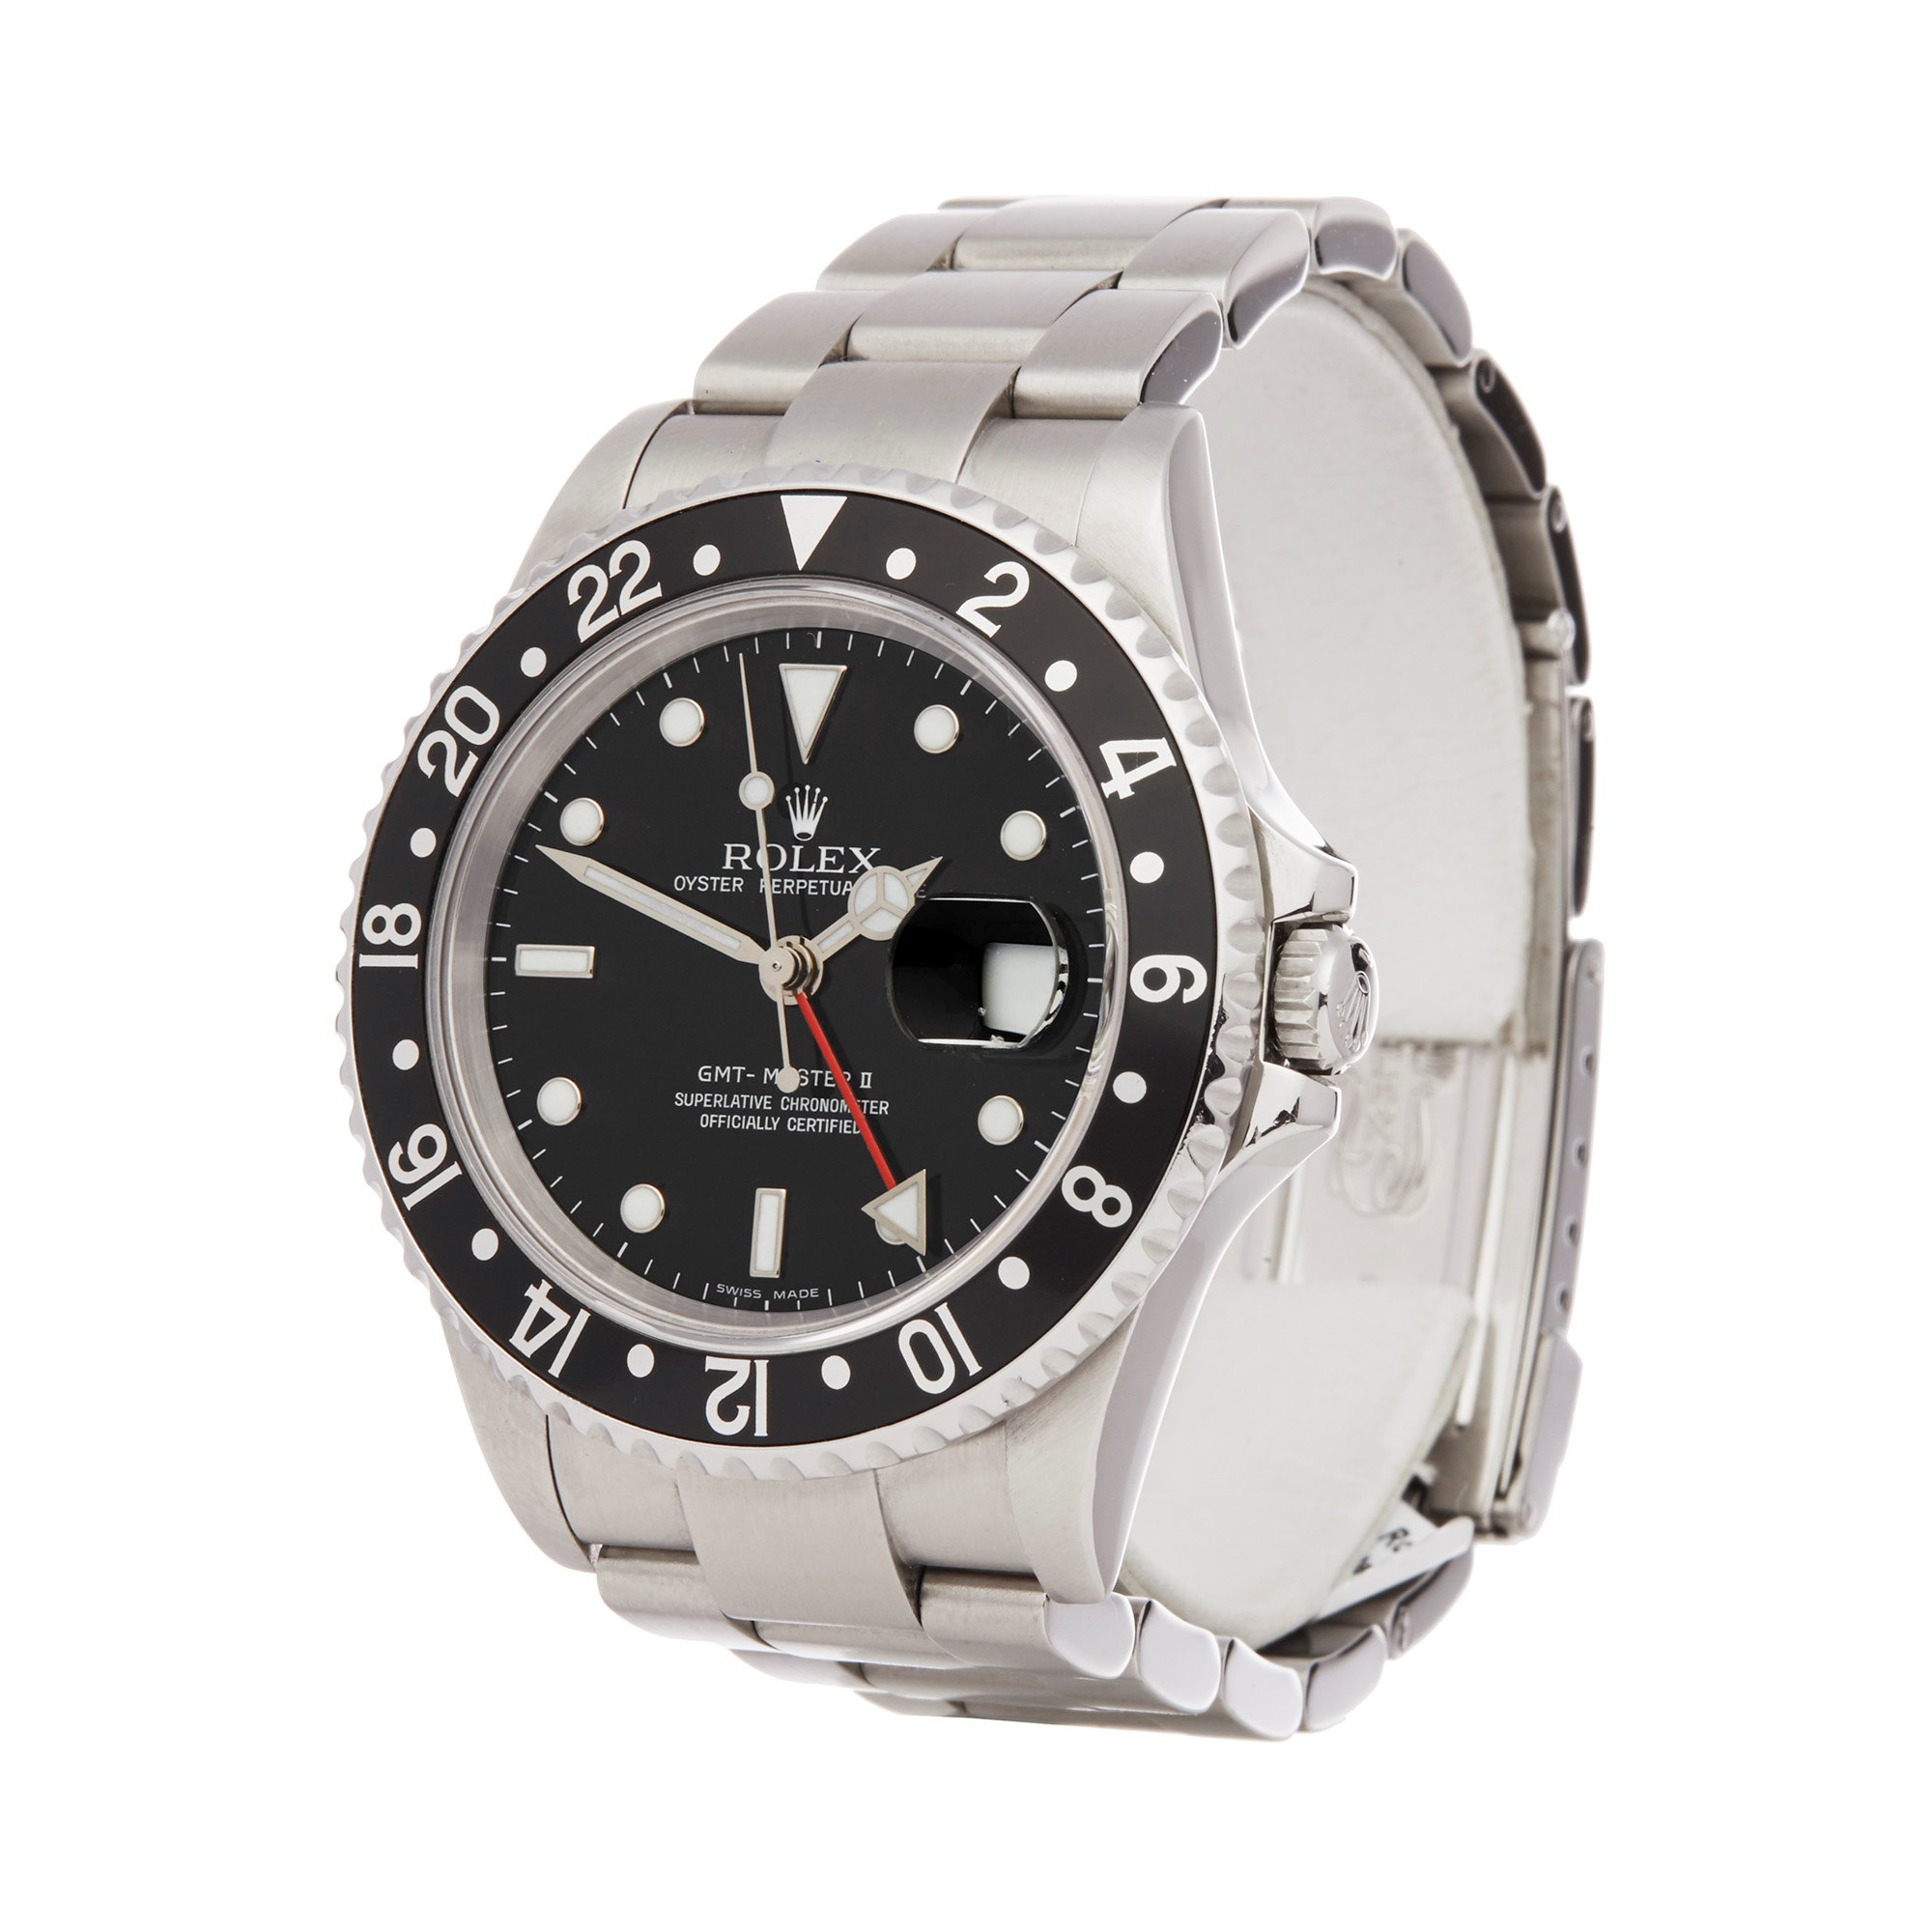 Rolex GMT-Master II Rectangular Dial Stainless Steel 16710